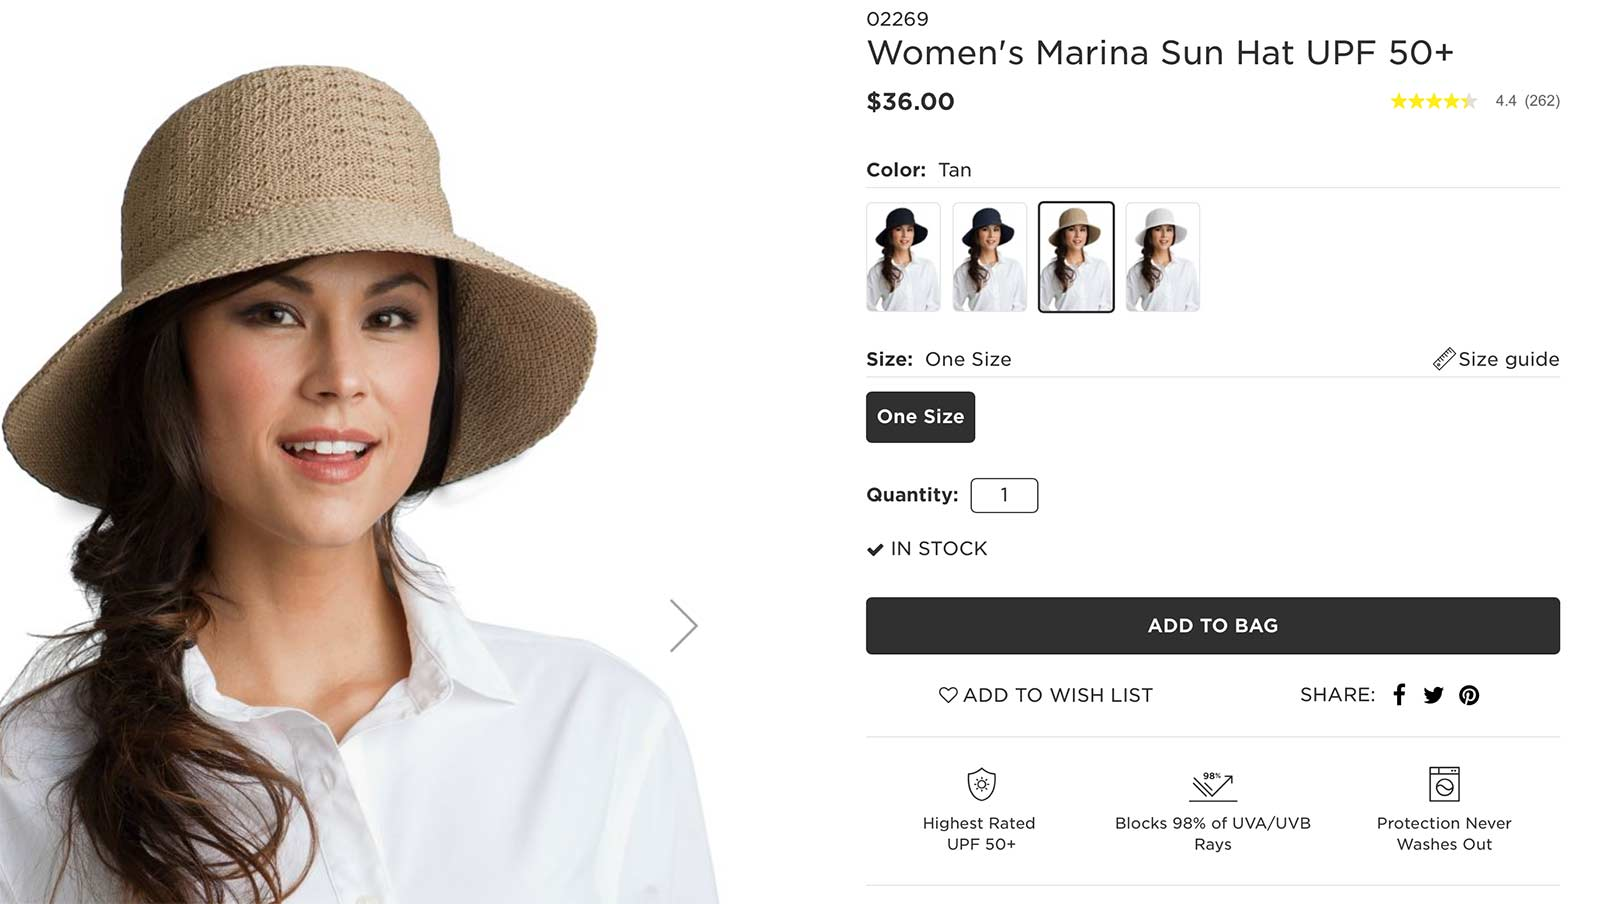 Coolibar product page with woman wearing a sun hat